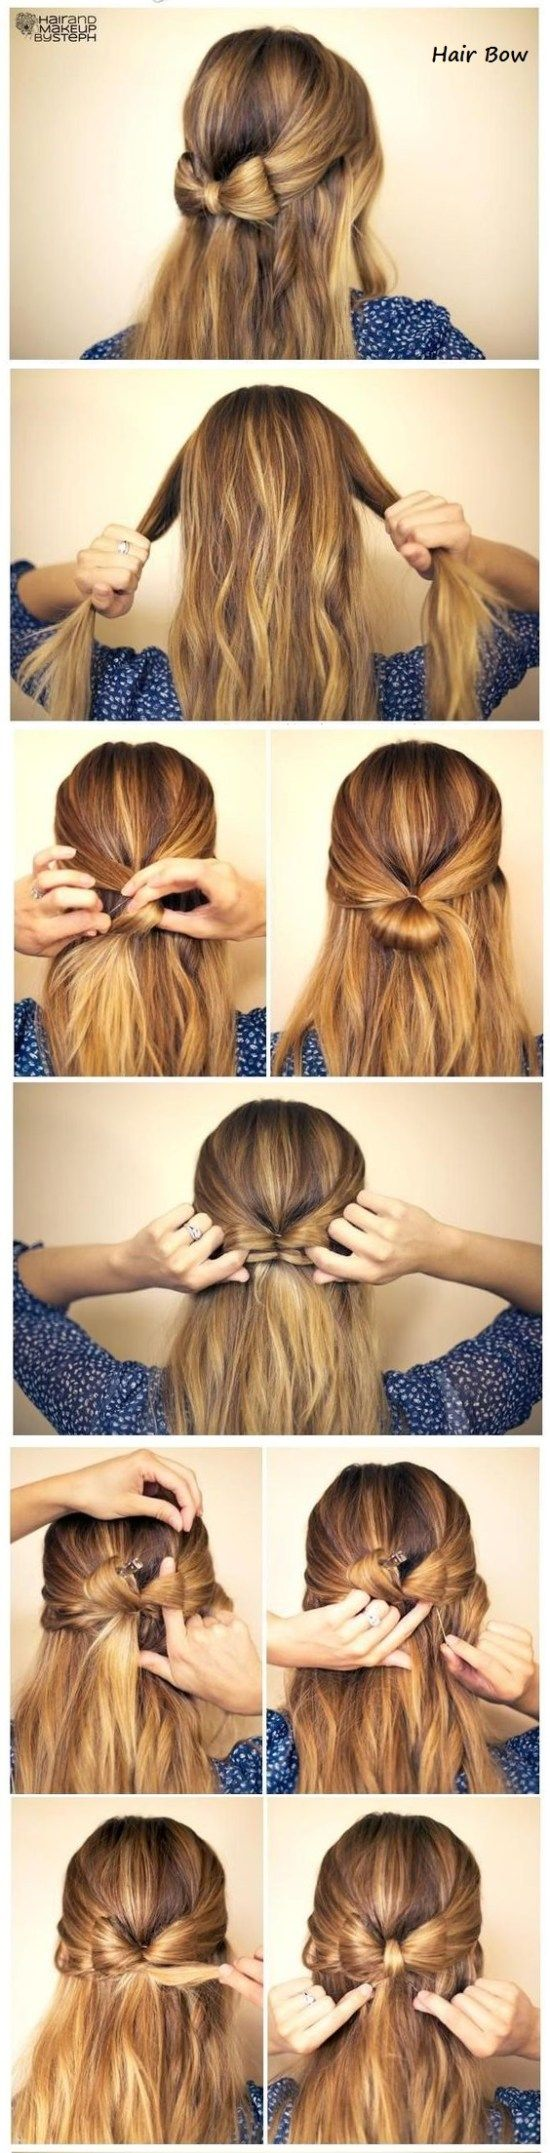 easy prom hairstyles for long hair you can diy at home locks